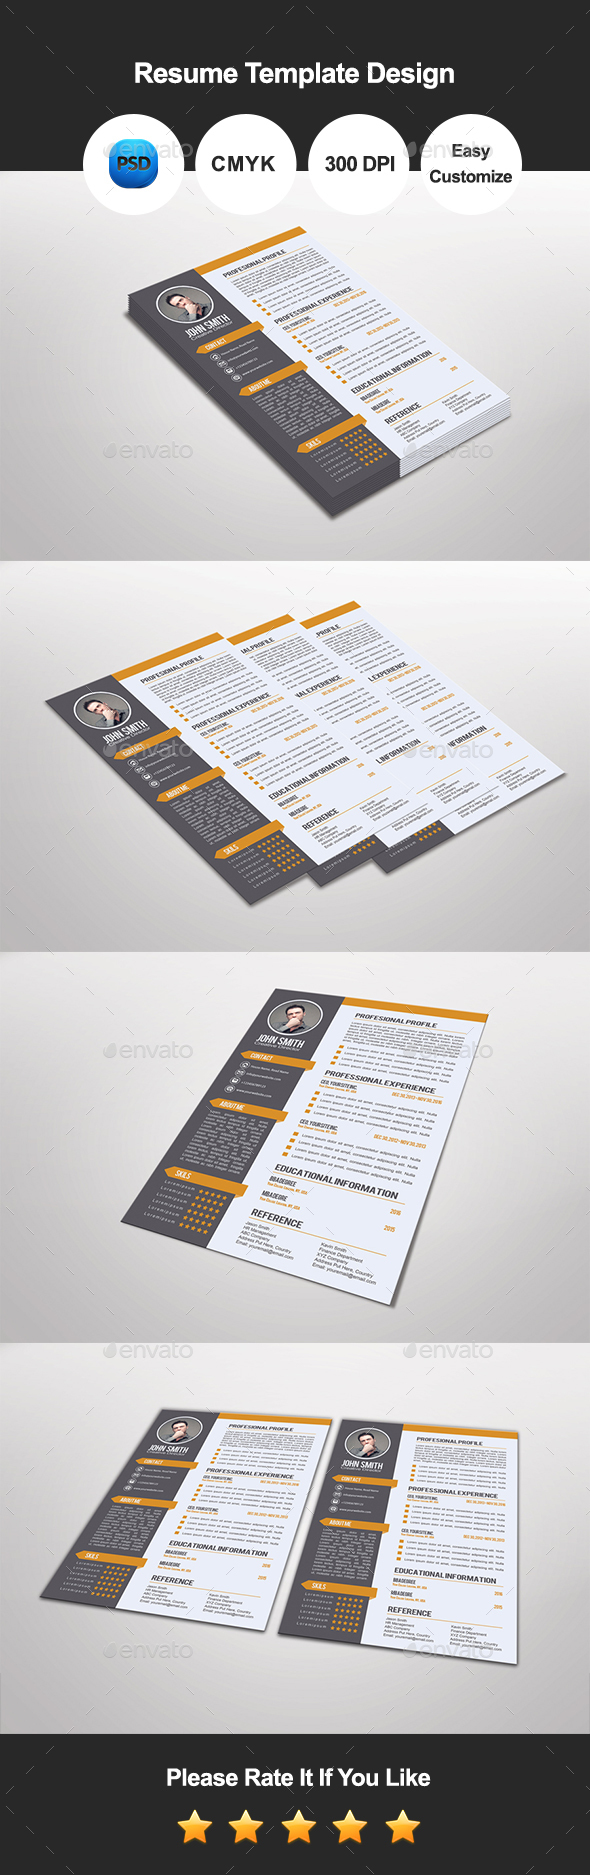 Dunlea Resume Template Design - Resumes Stationery